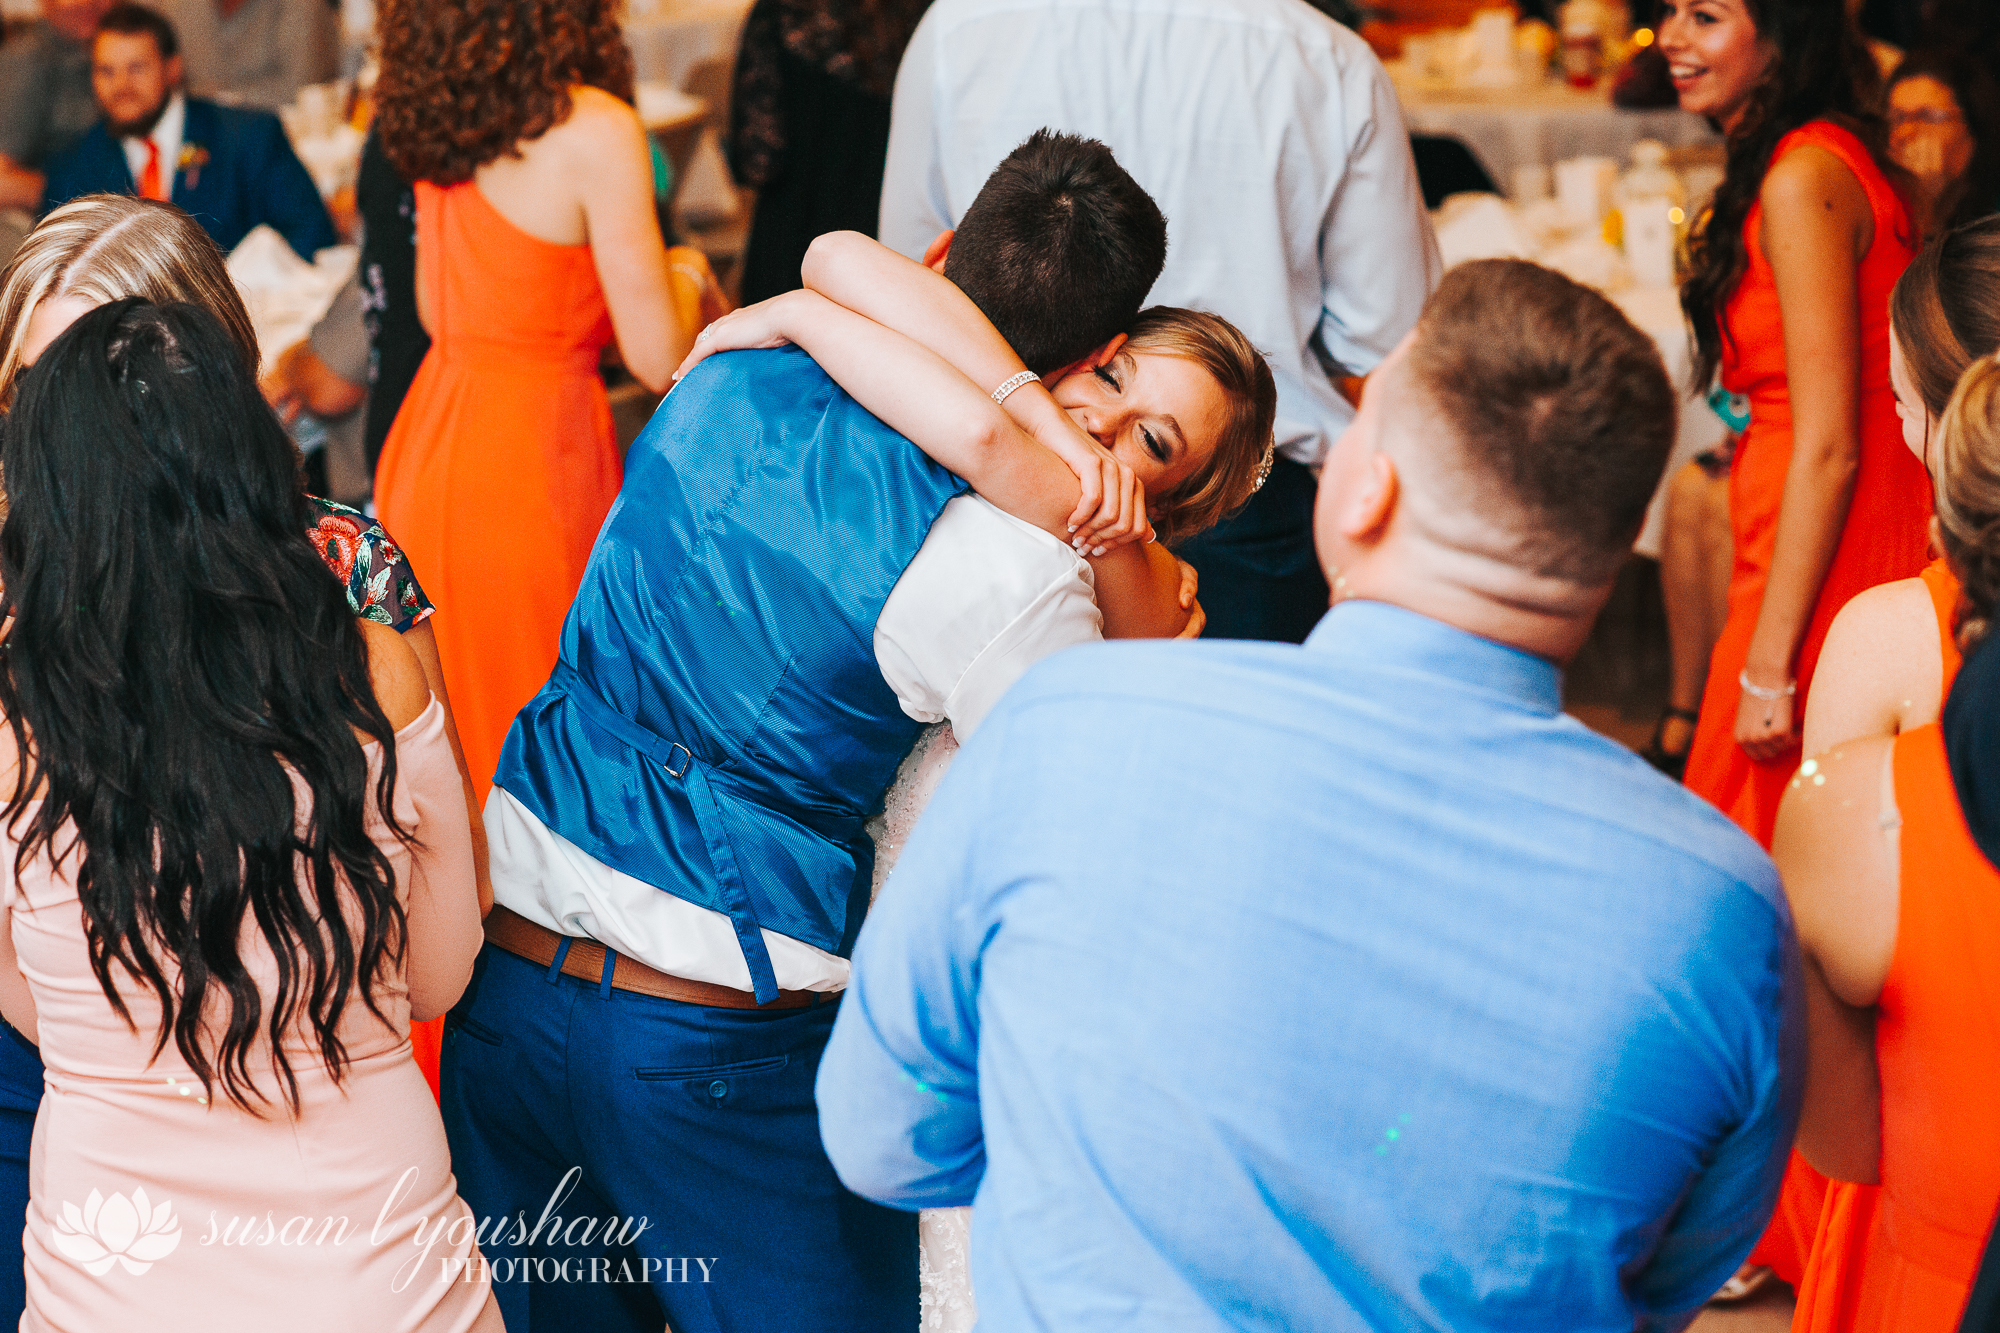 BLOG Kylie and corey Bennet 10-13-2018 SLY Photography LLC-180.jpg